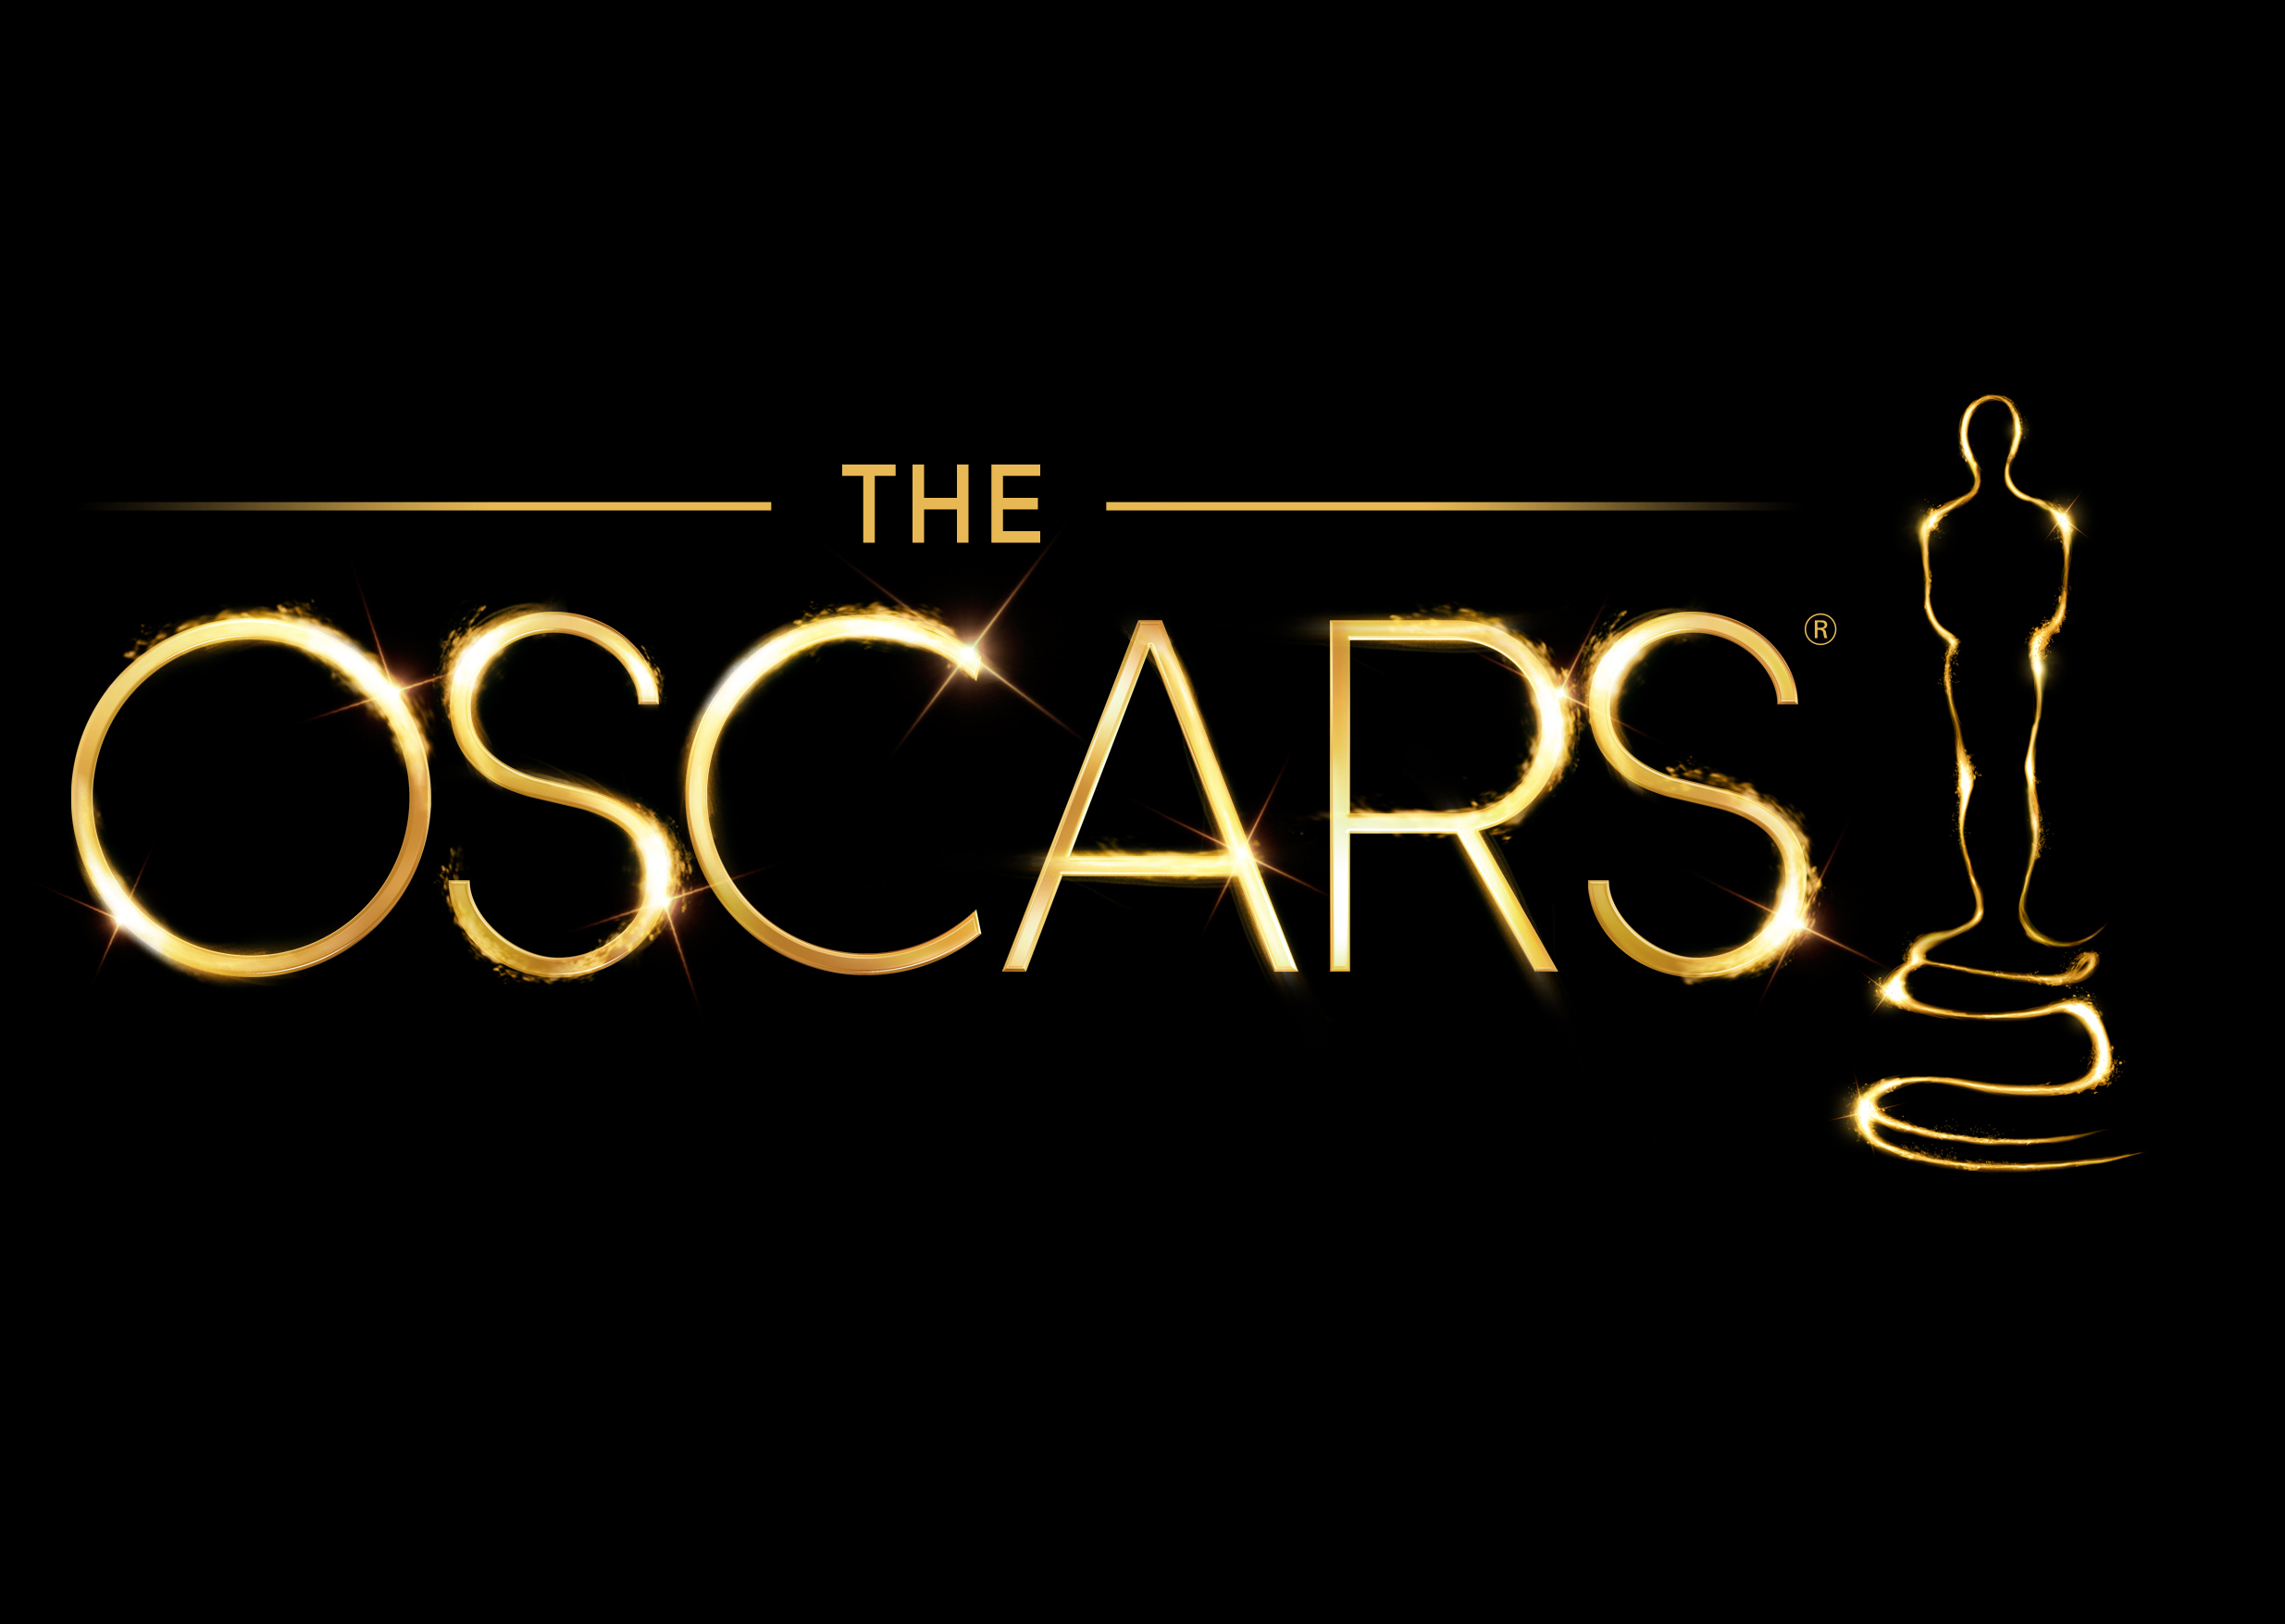 Marketing Lessons from the Oscars